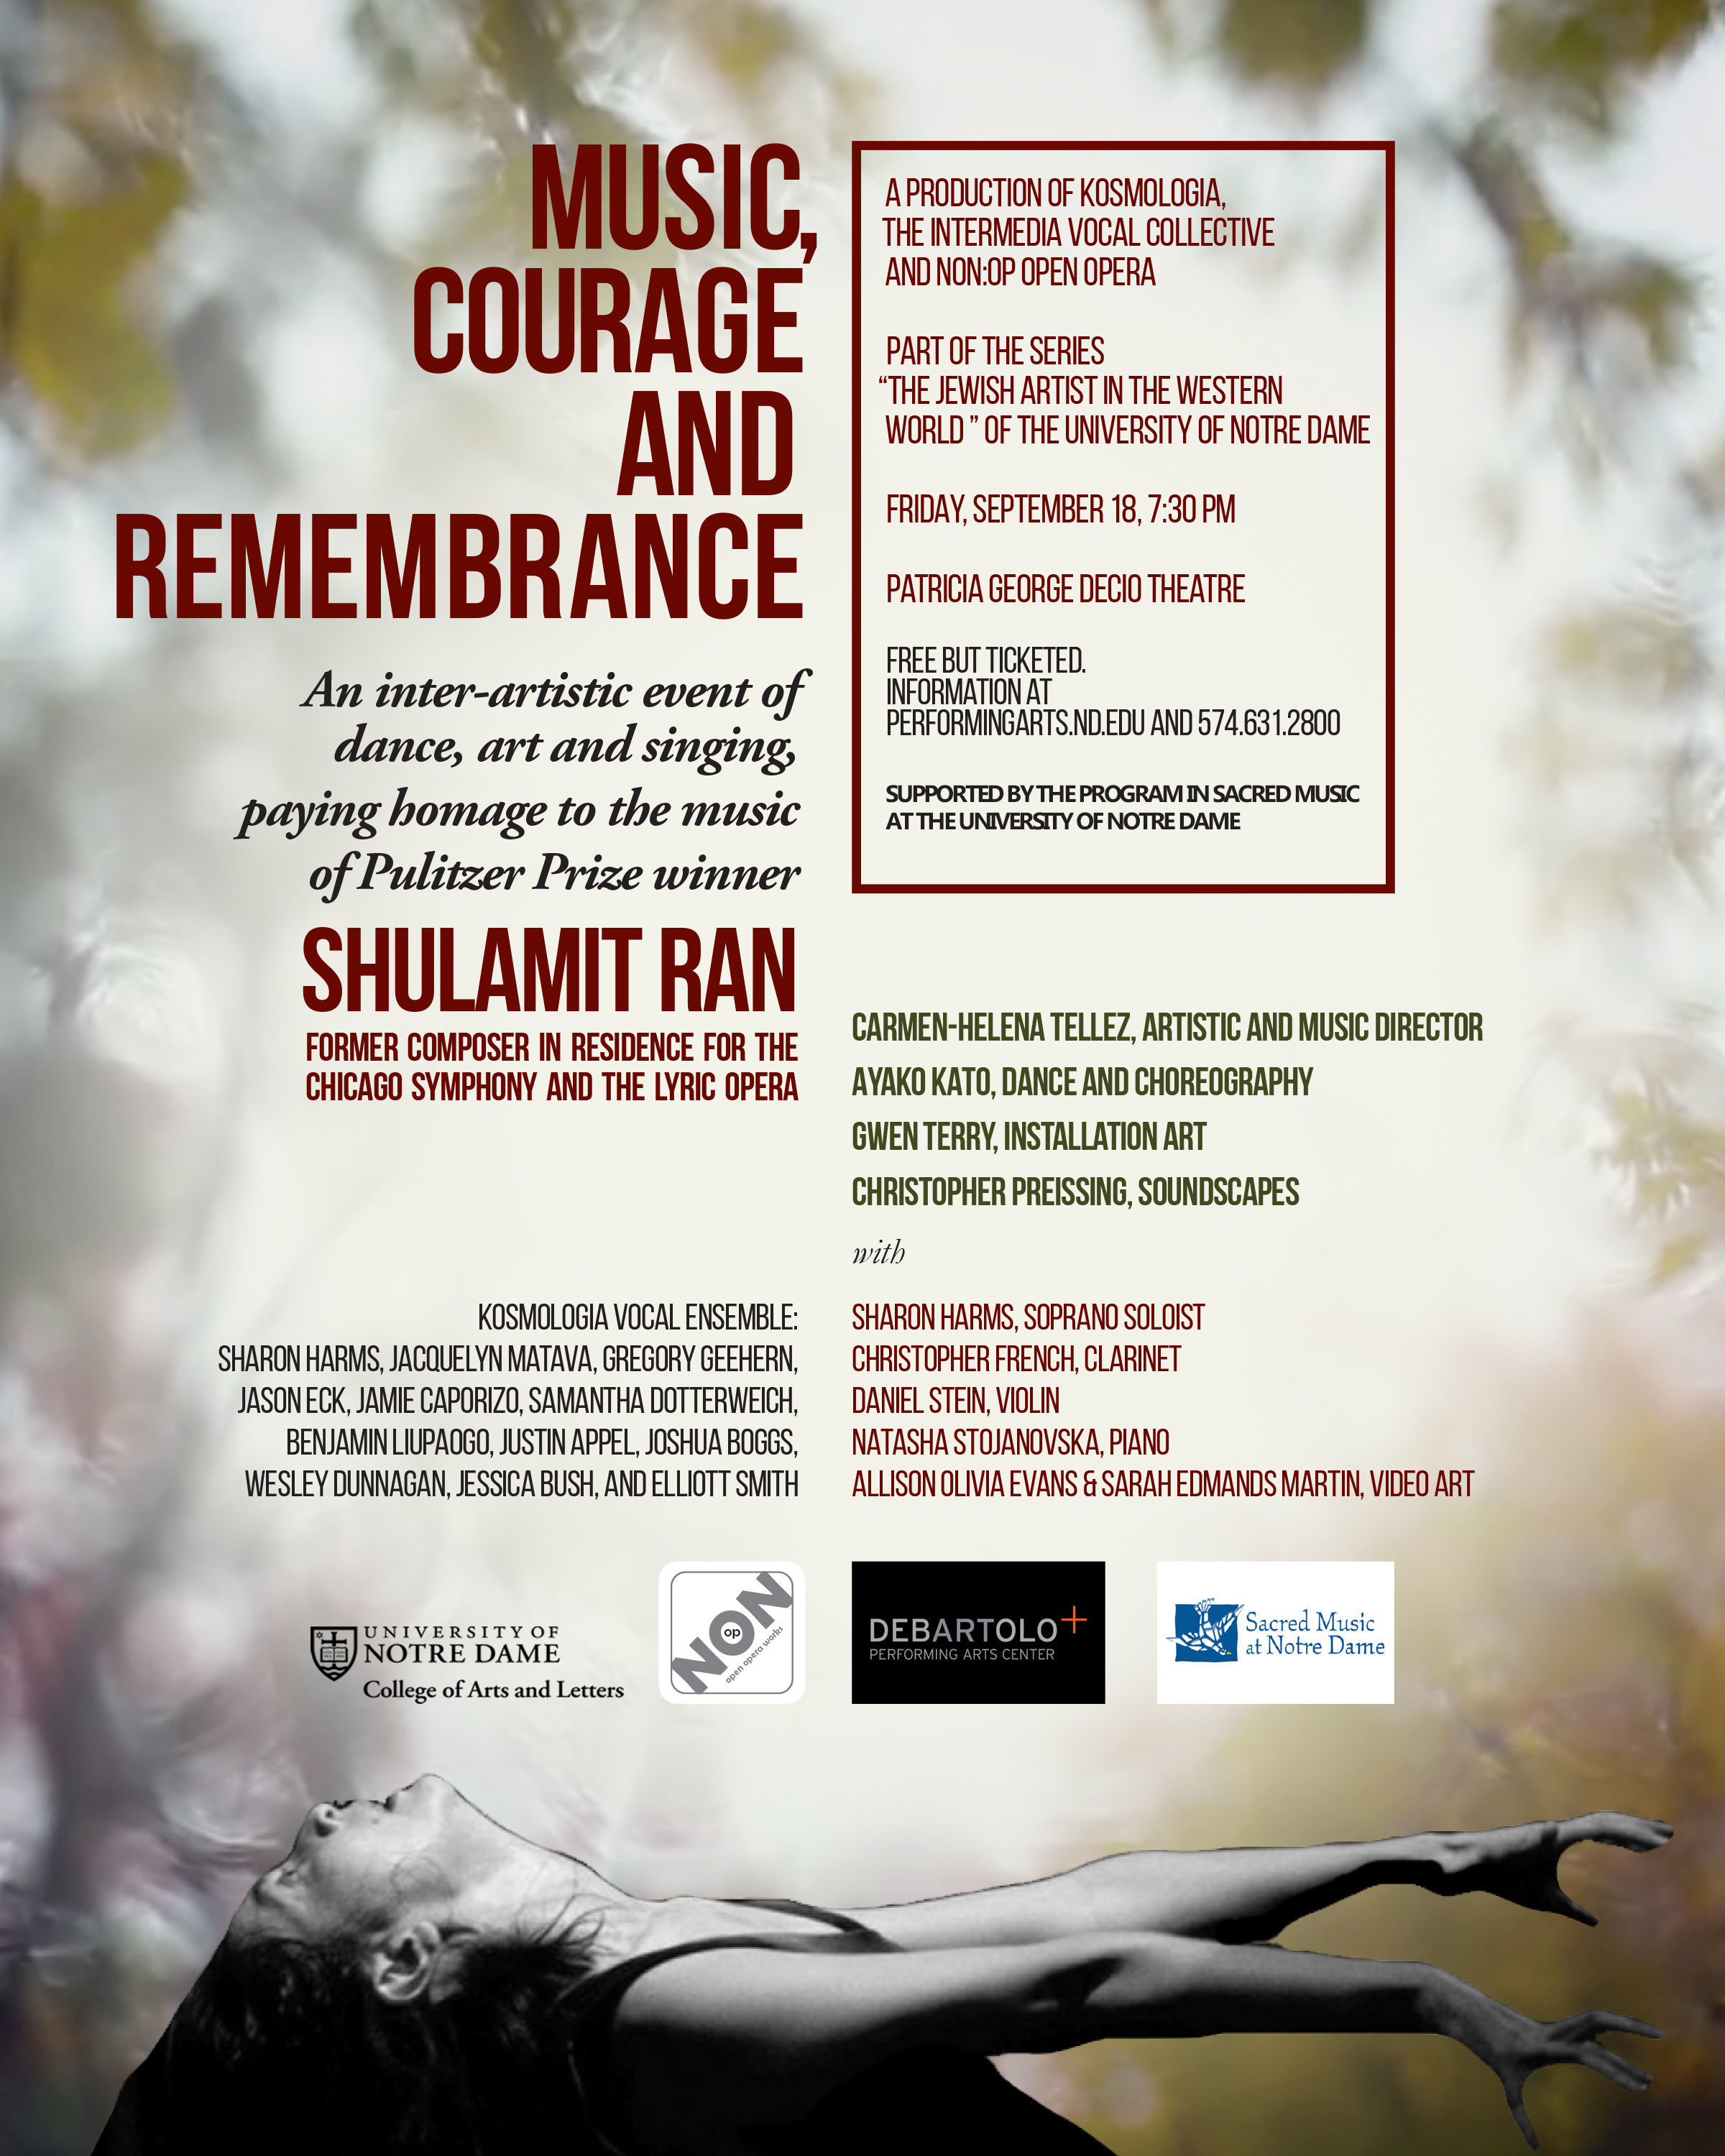 music_courage_remembrance_8x10posters_sept_18